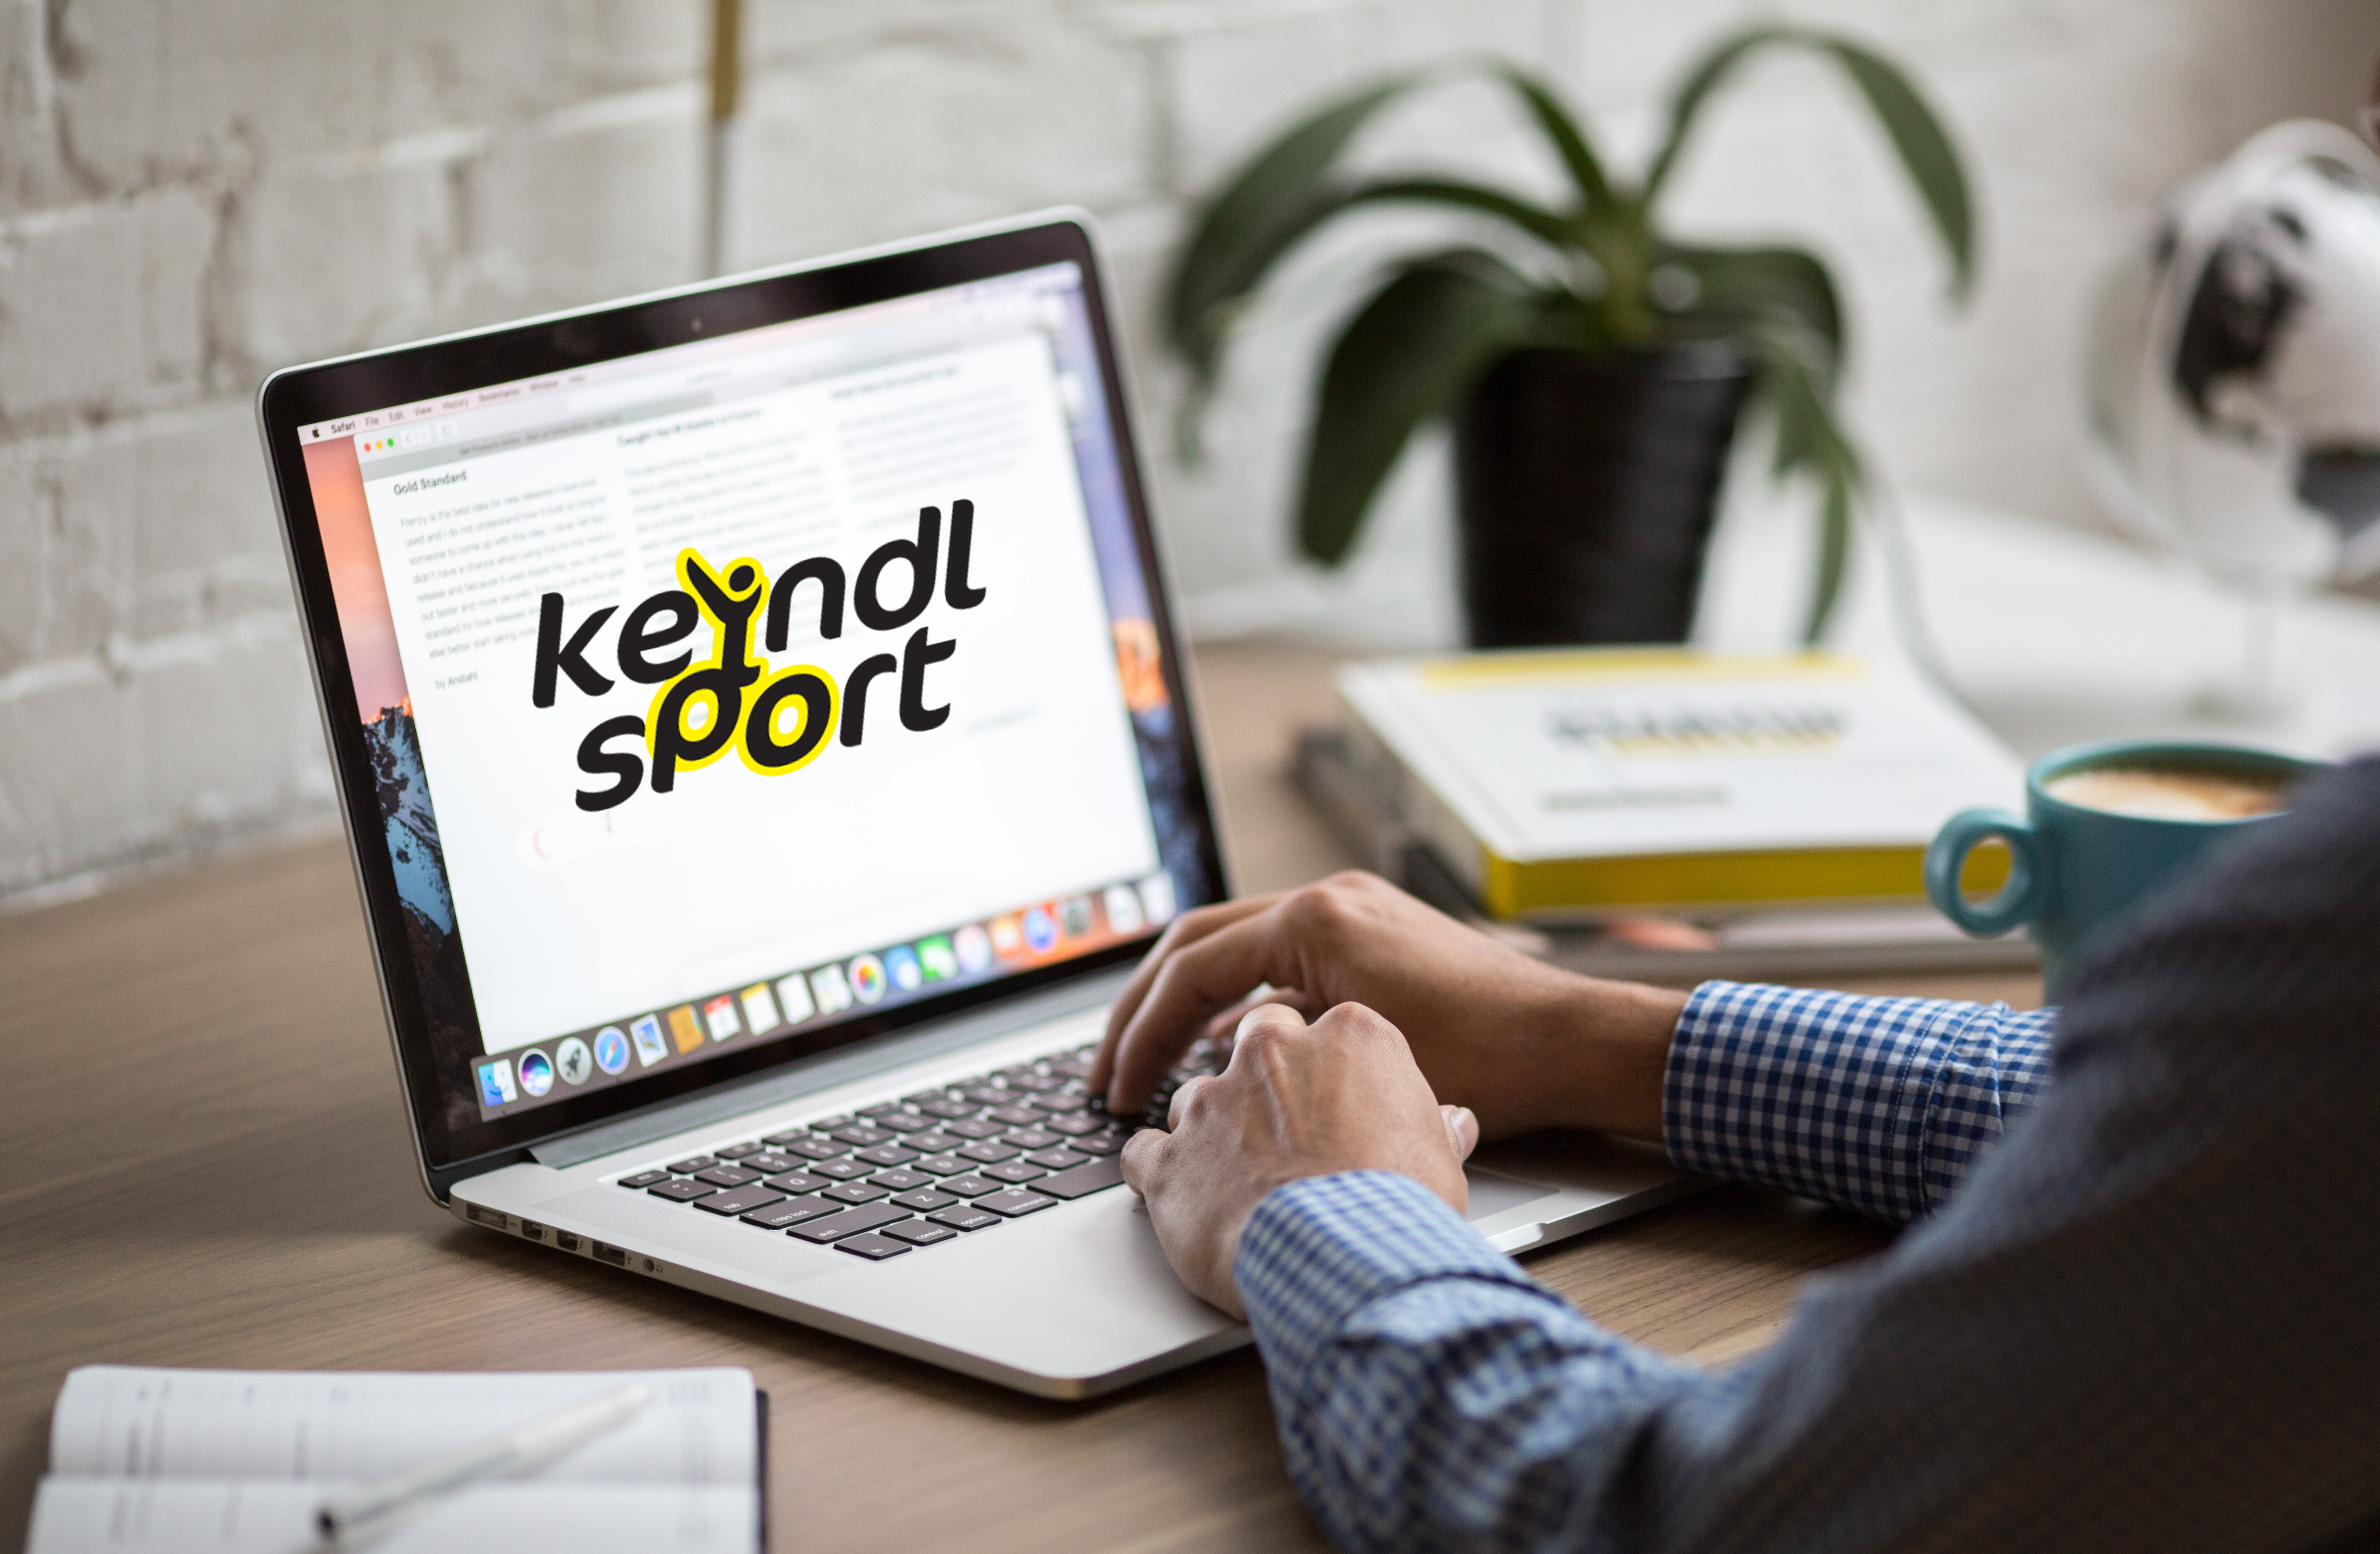 KEINDL SPORT – NEW NAME ON OUR CLIENT LIST